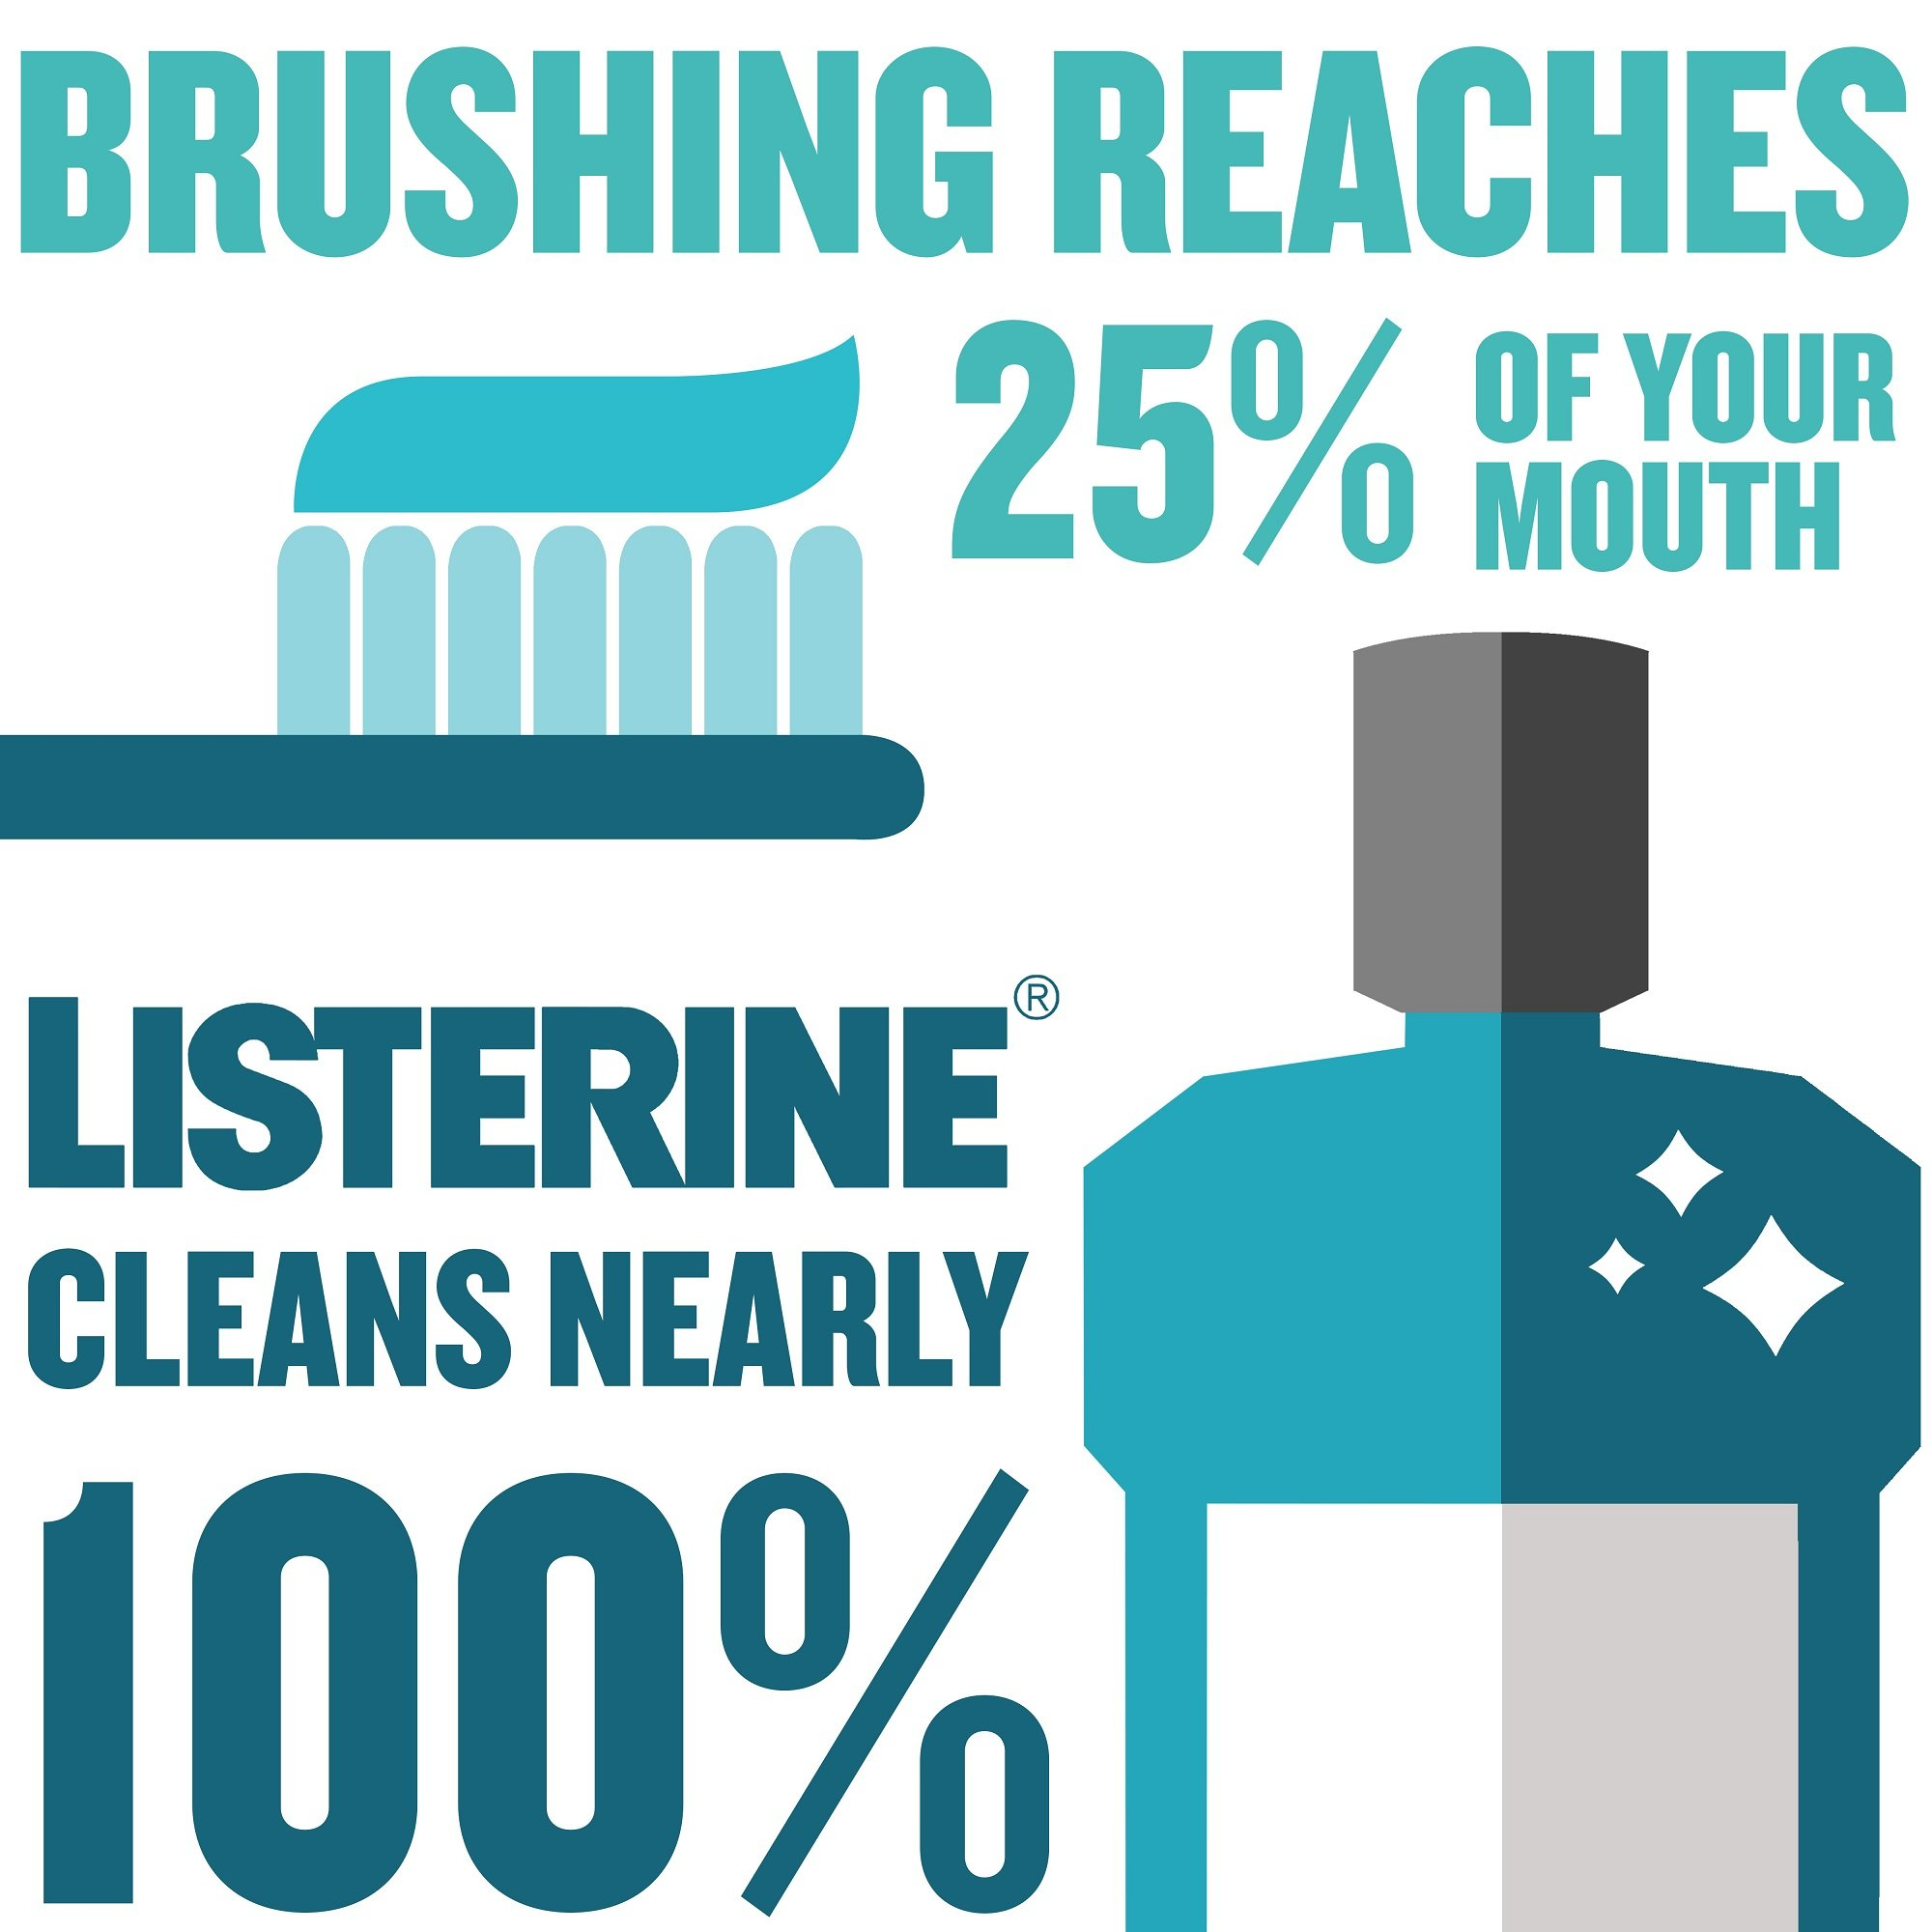 Listerine Cool Mint Antiseptic Mouthwash For Bad Breath